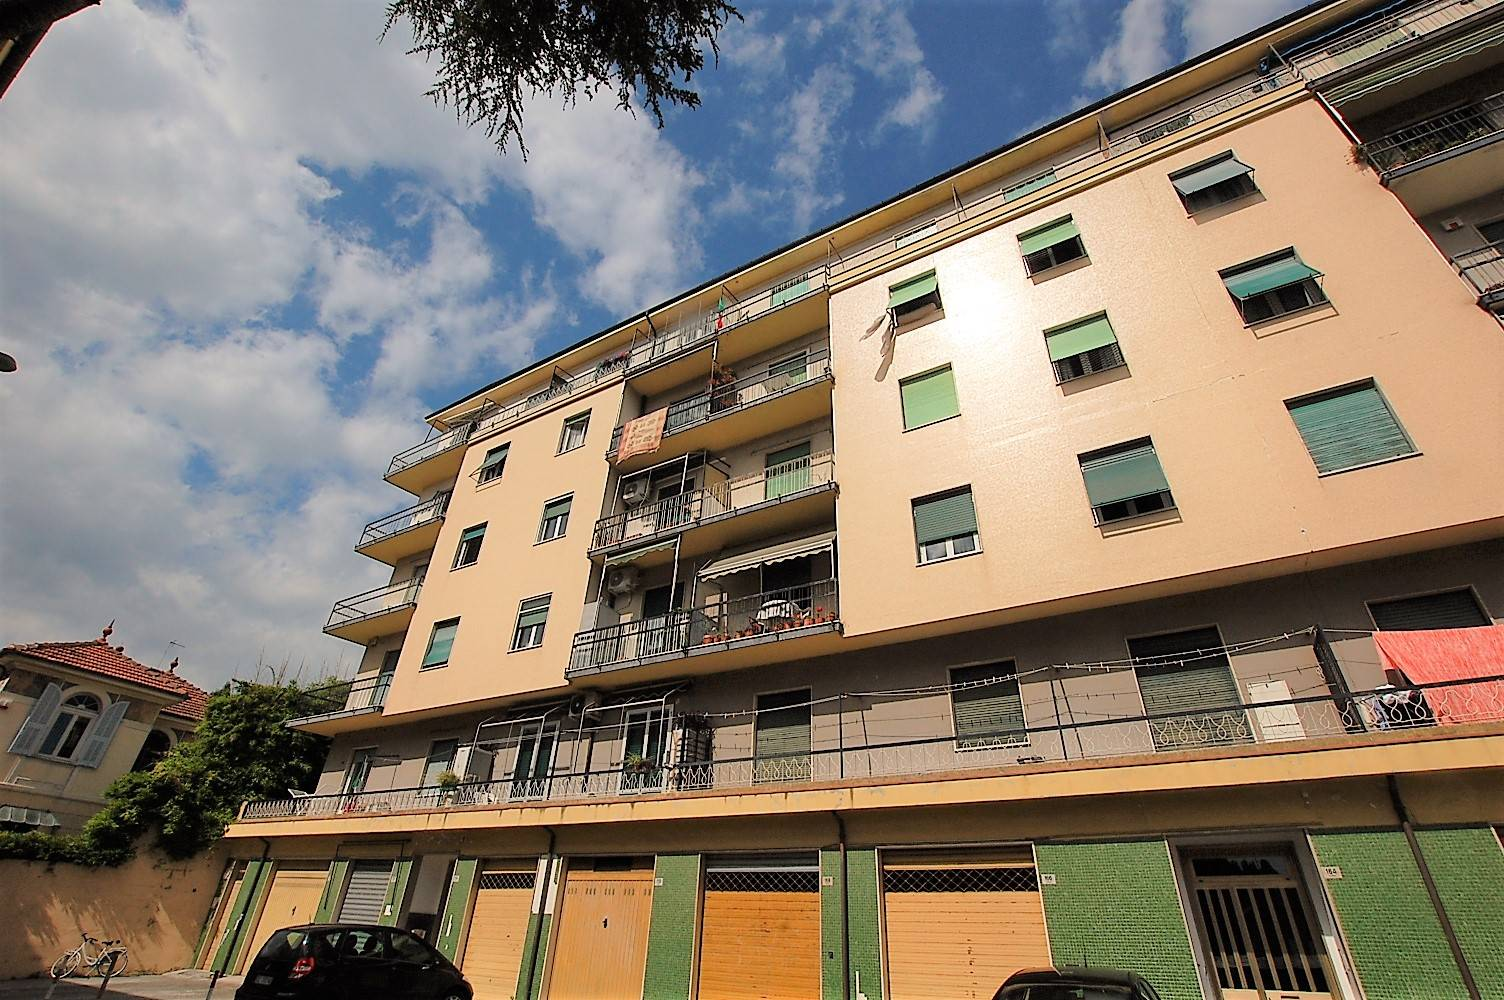 PORTO MAURIZIO CENTRO, IMPERIA, Apartment for sale of 97 Sq. mt., Good condition, Heating Individual heating system, Energetic class: G, Epi: 250,15